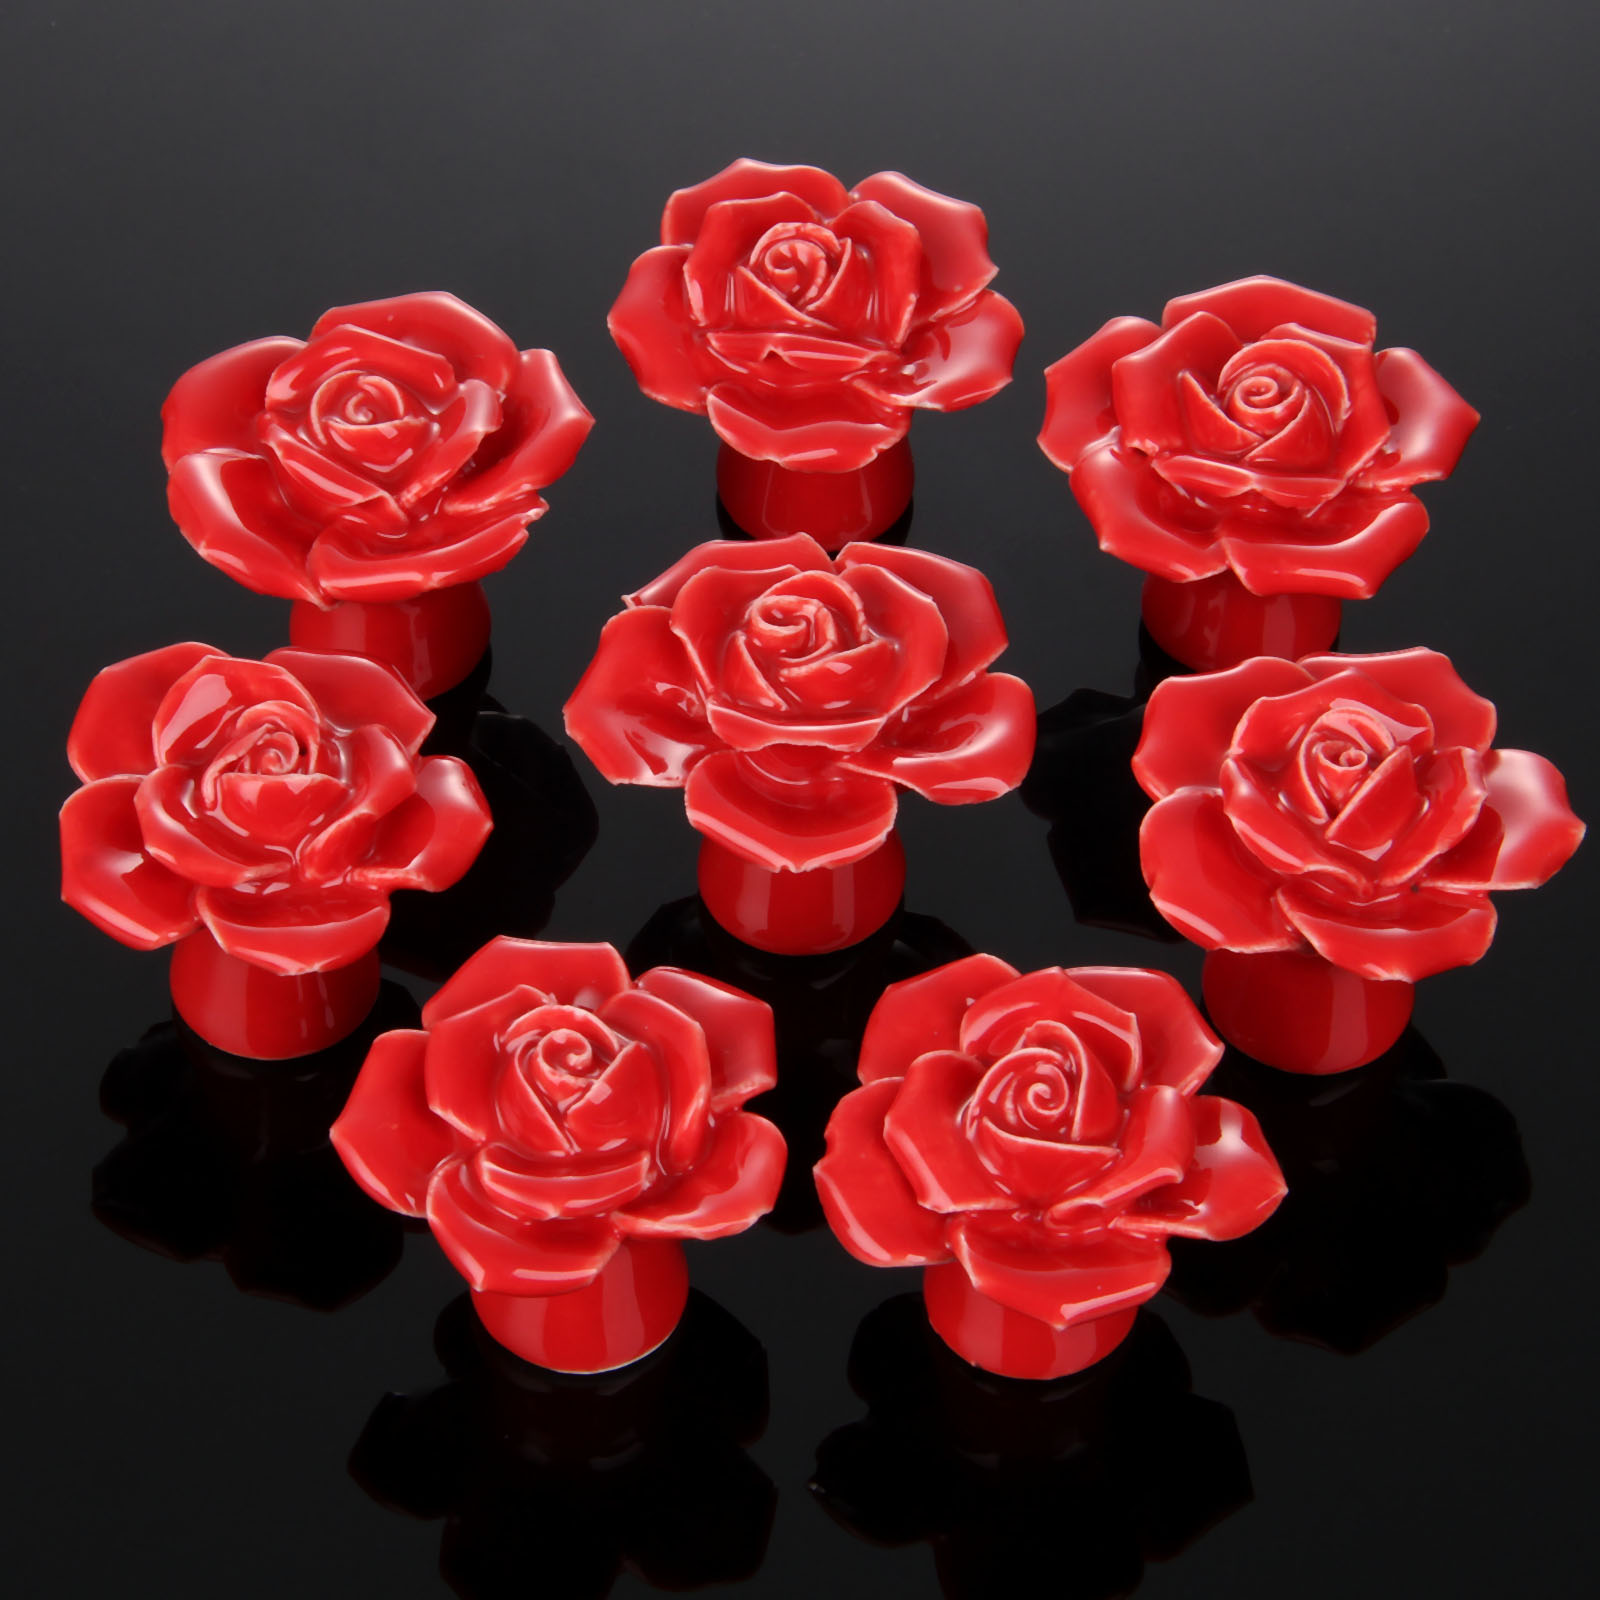 8Pcs Furniture Handles Ceramic Cabinet Knobs and Handles Door Cupboard Drawer Kitchen Pull Handles Furniture Fittings Red Rose